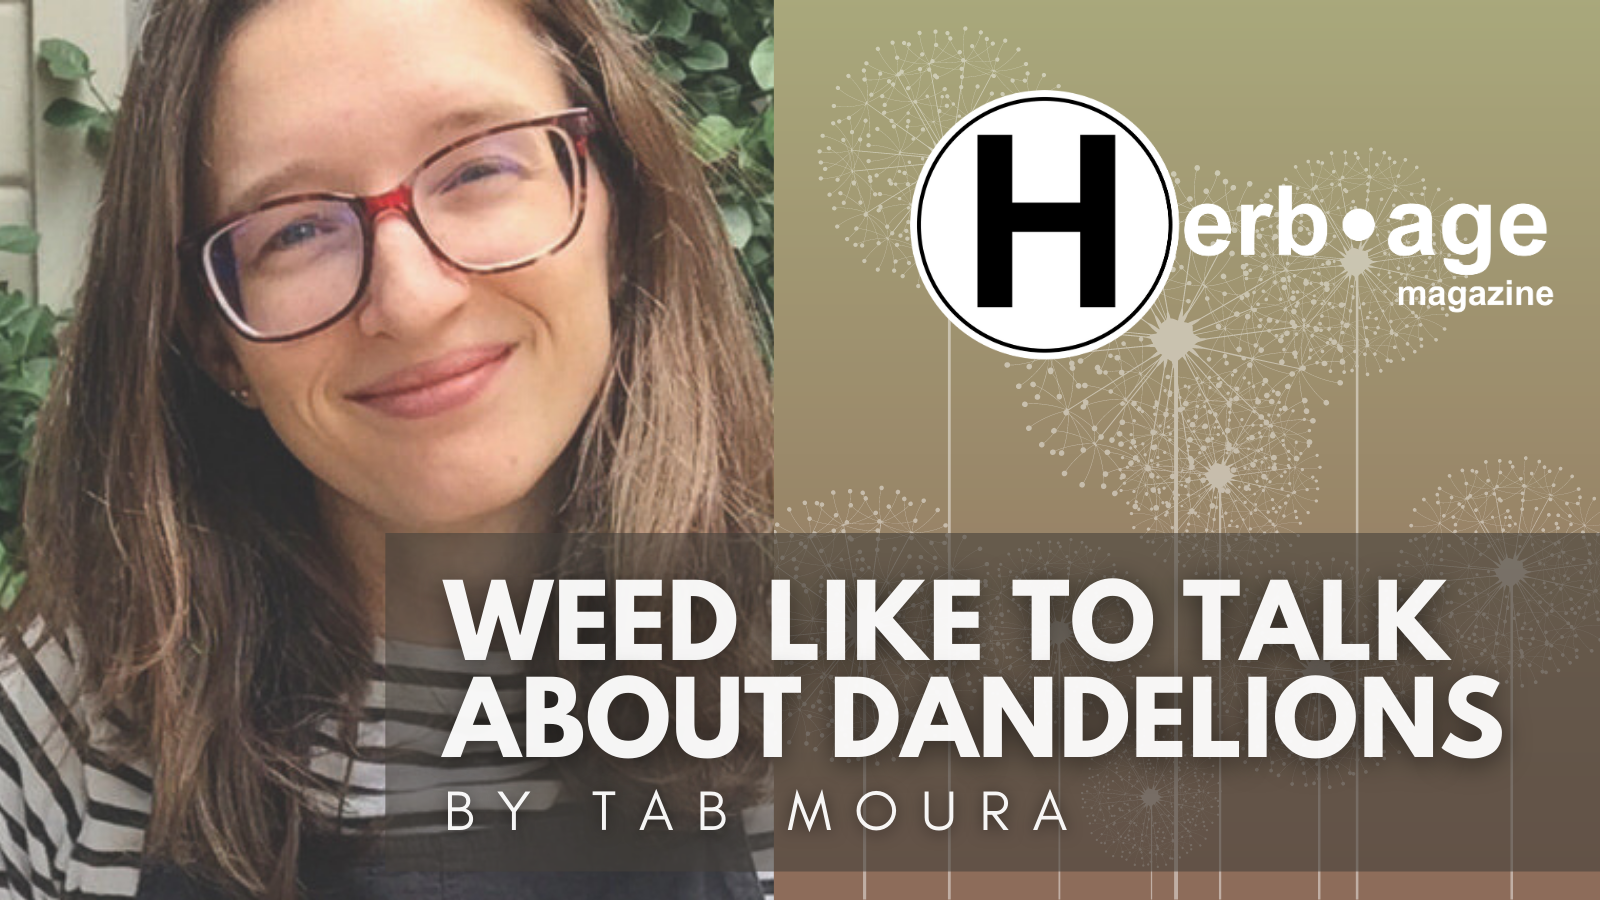 Weed Like to Talk About Dandelions